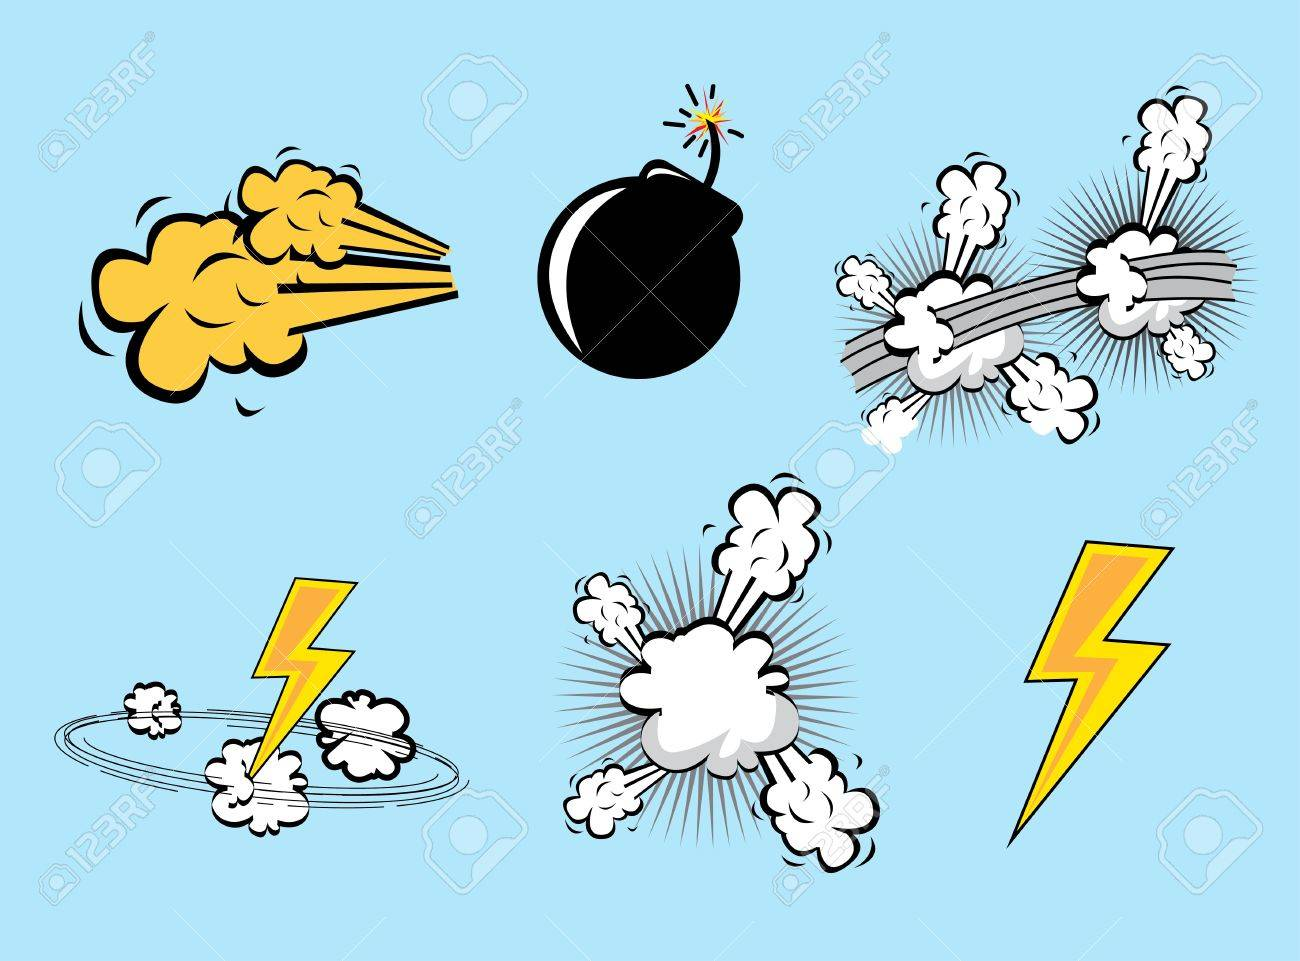 comics icons over blue background illustration Stock Vector - 19773024